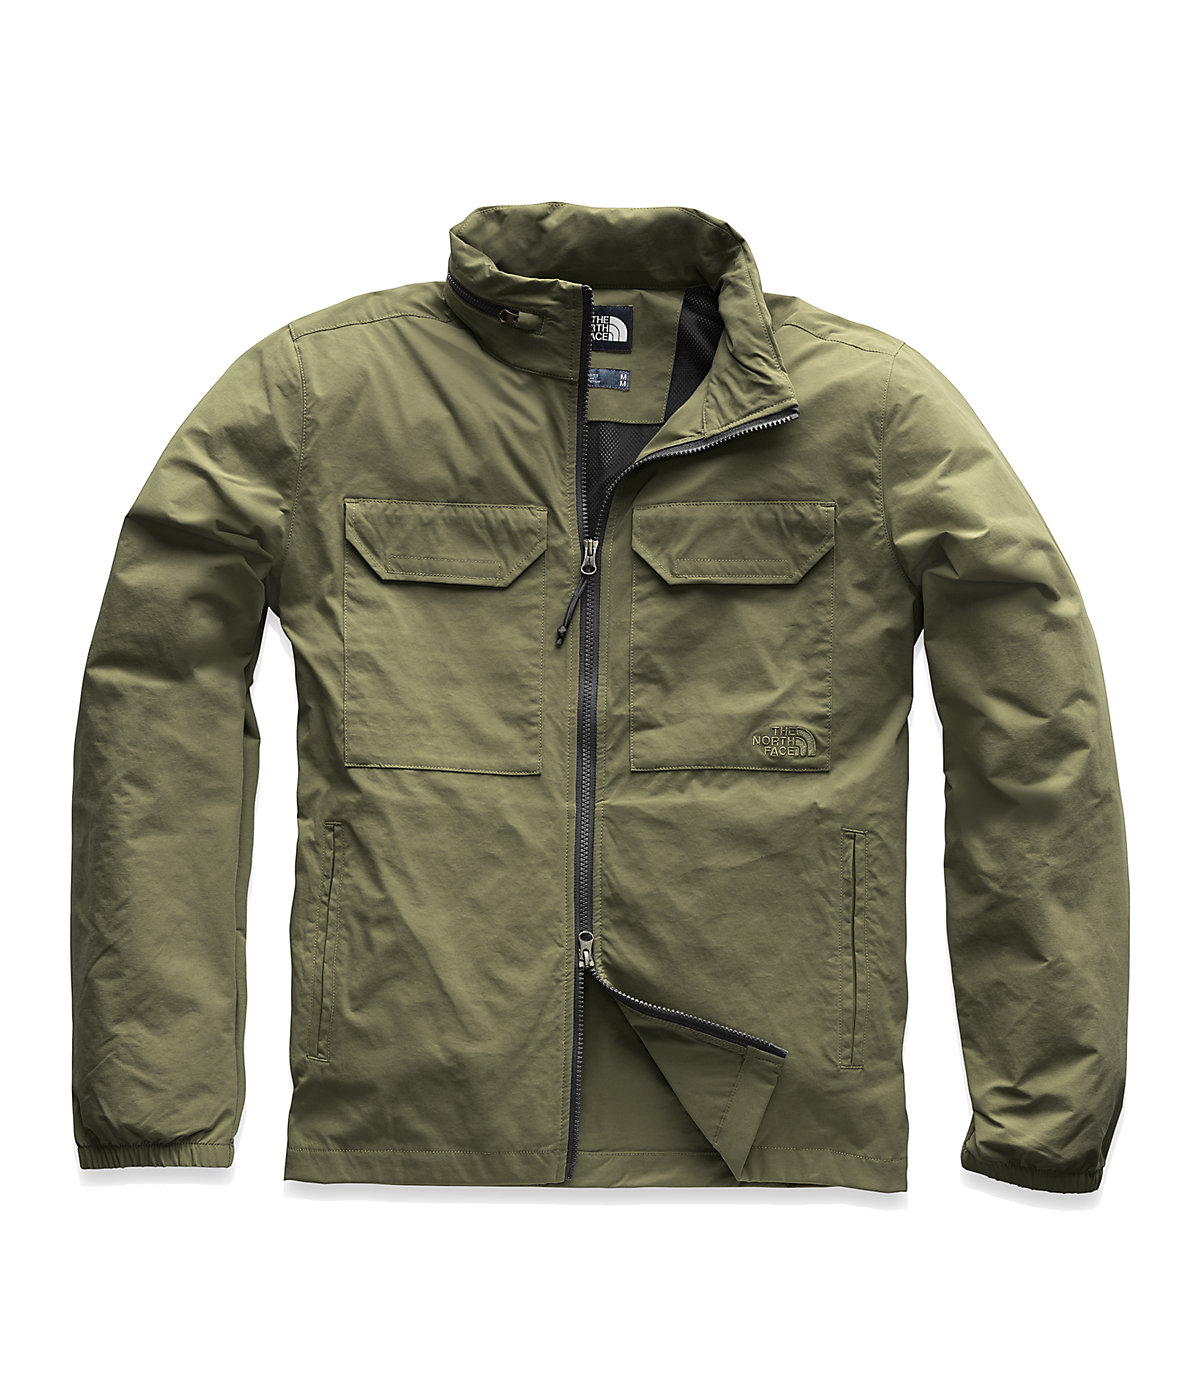 Men's Temescal Travel Jacket | The North Face | Jackets